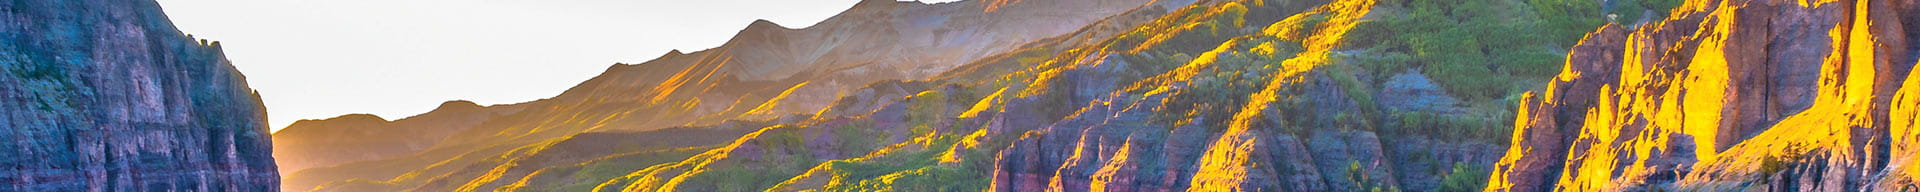 telluride-mountains